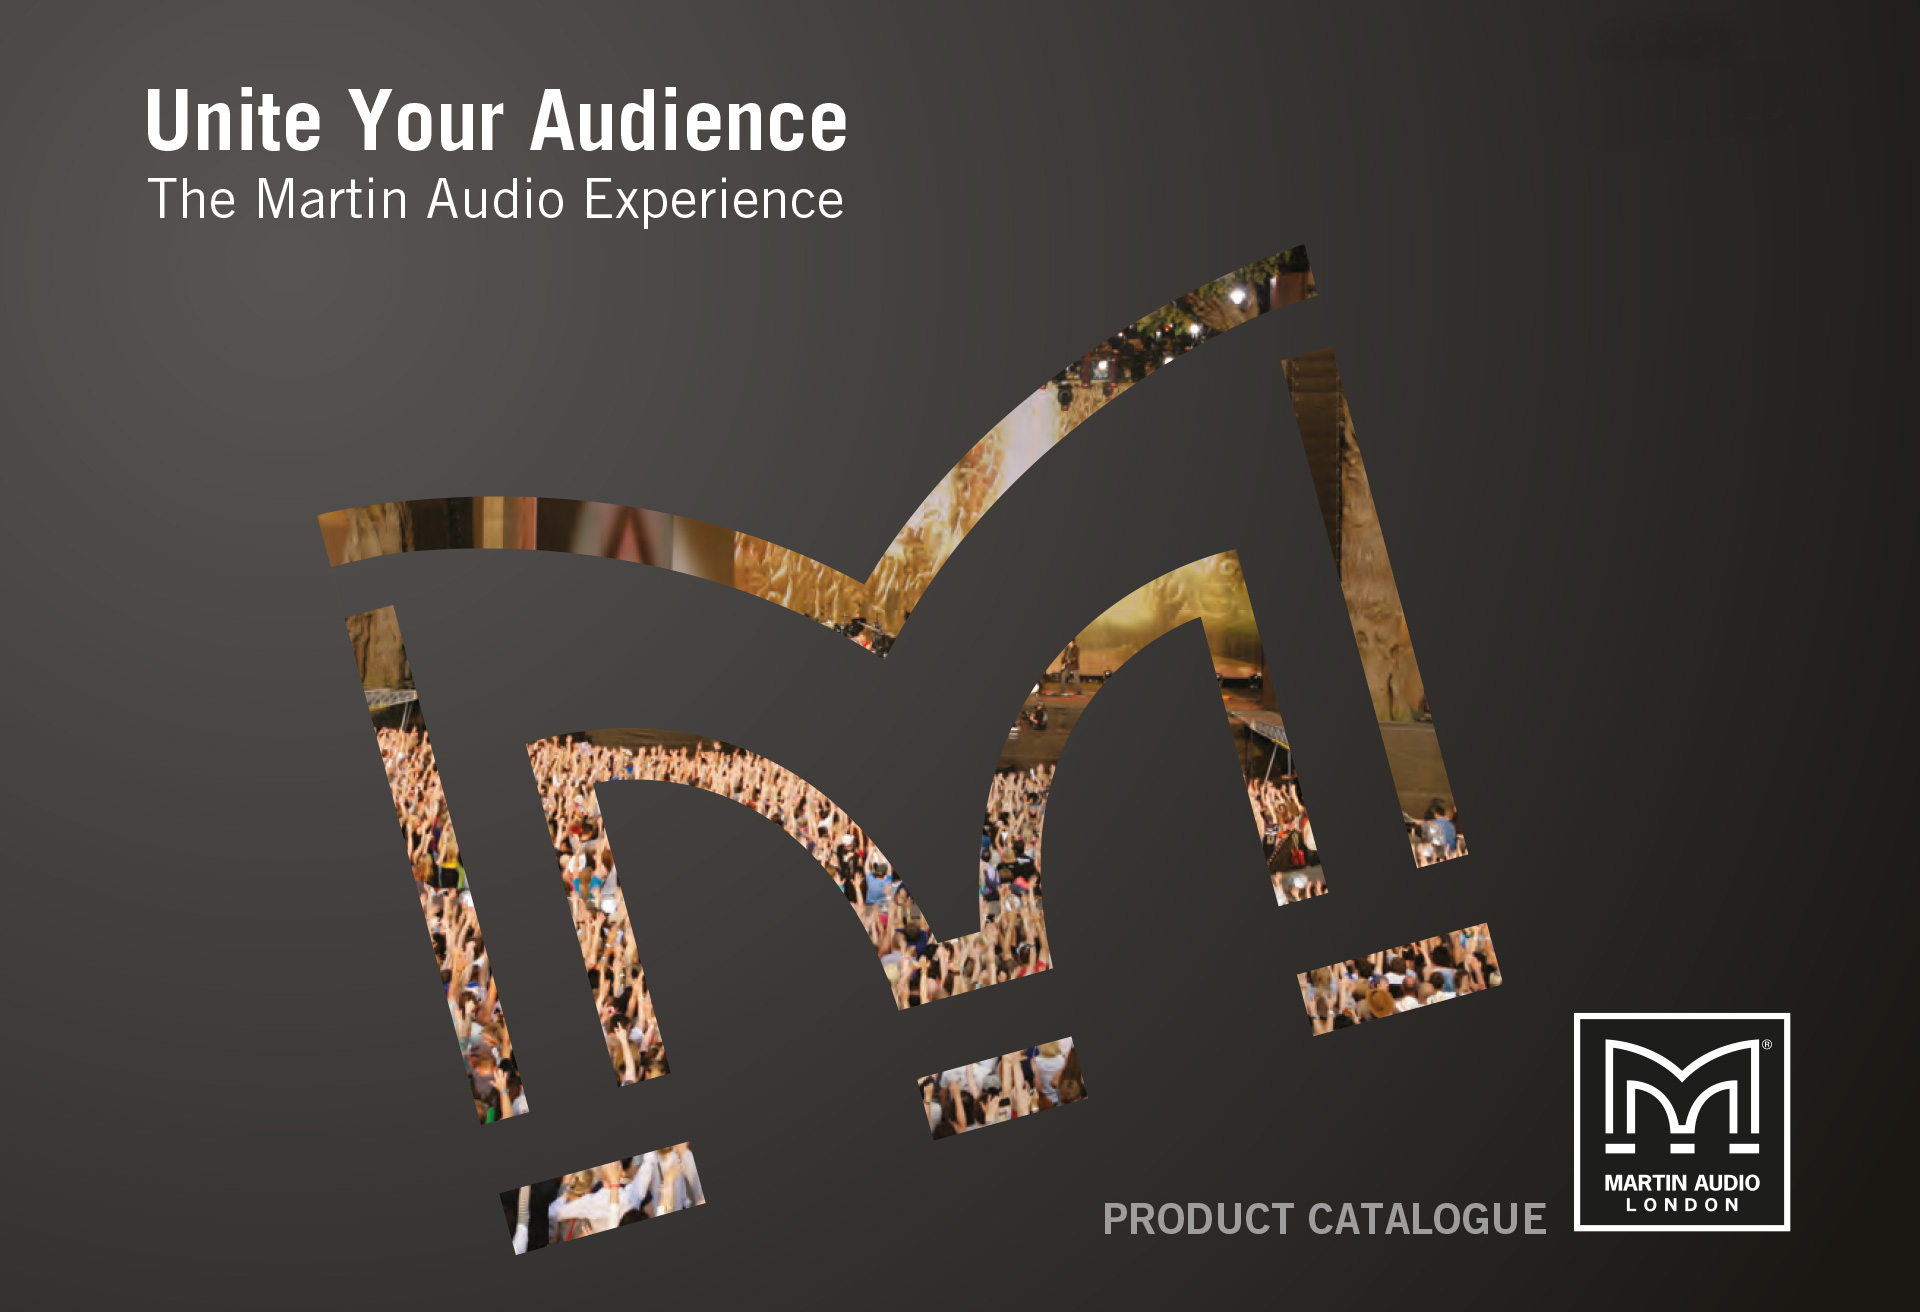 Martin Audio - Catalogue design